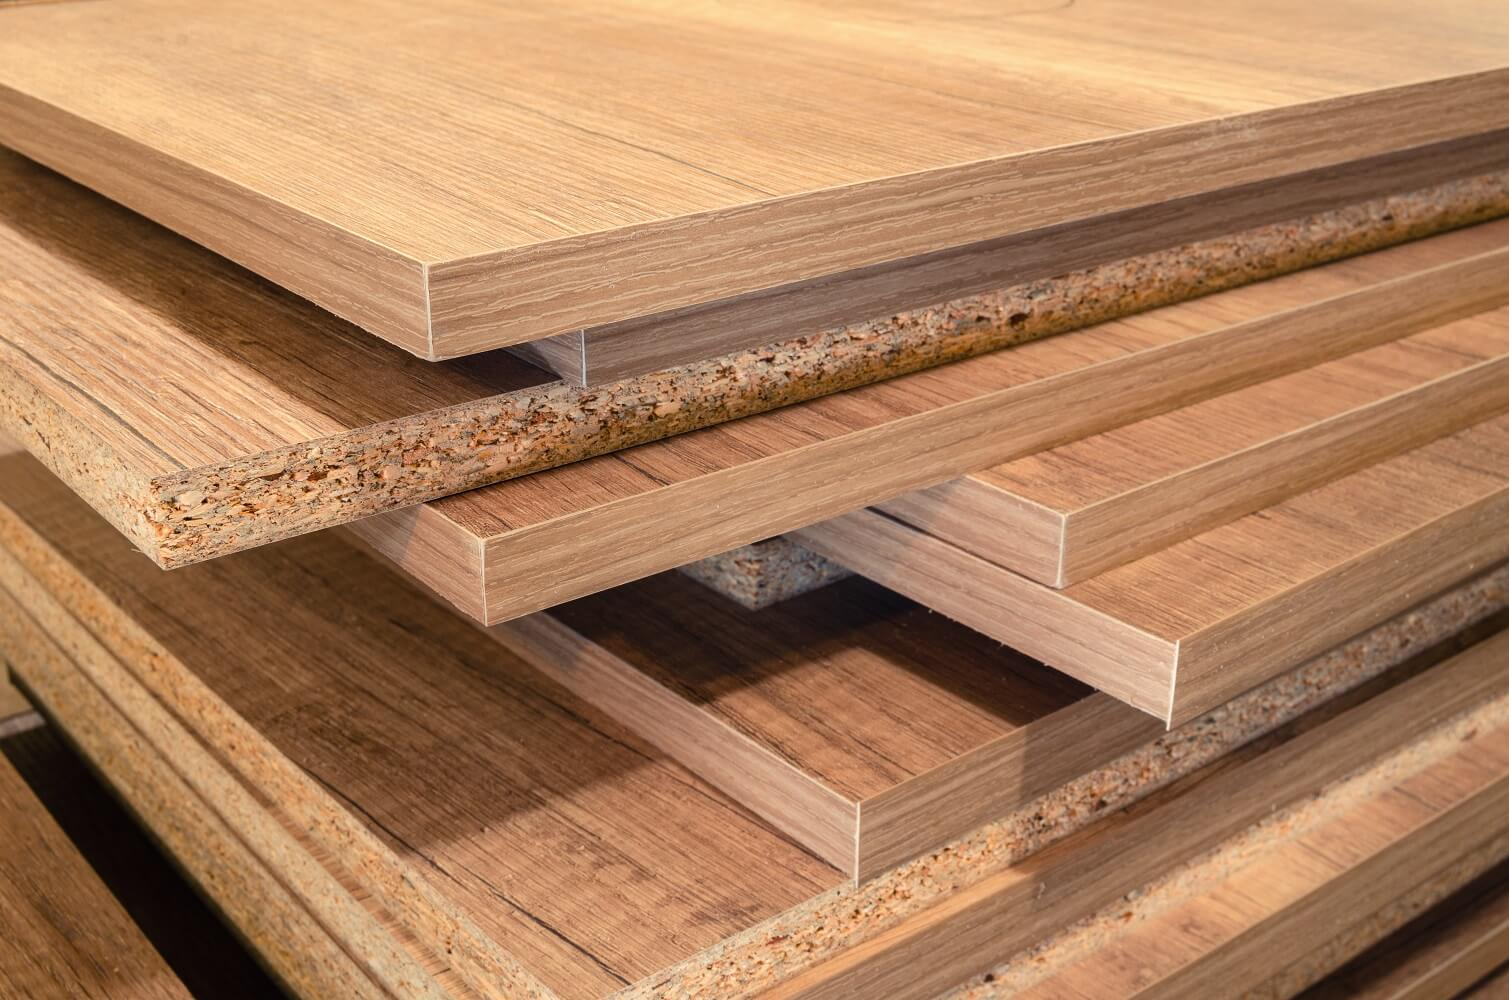 an image with various types of wood including MDF, particle board, and plywood